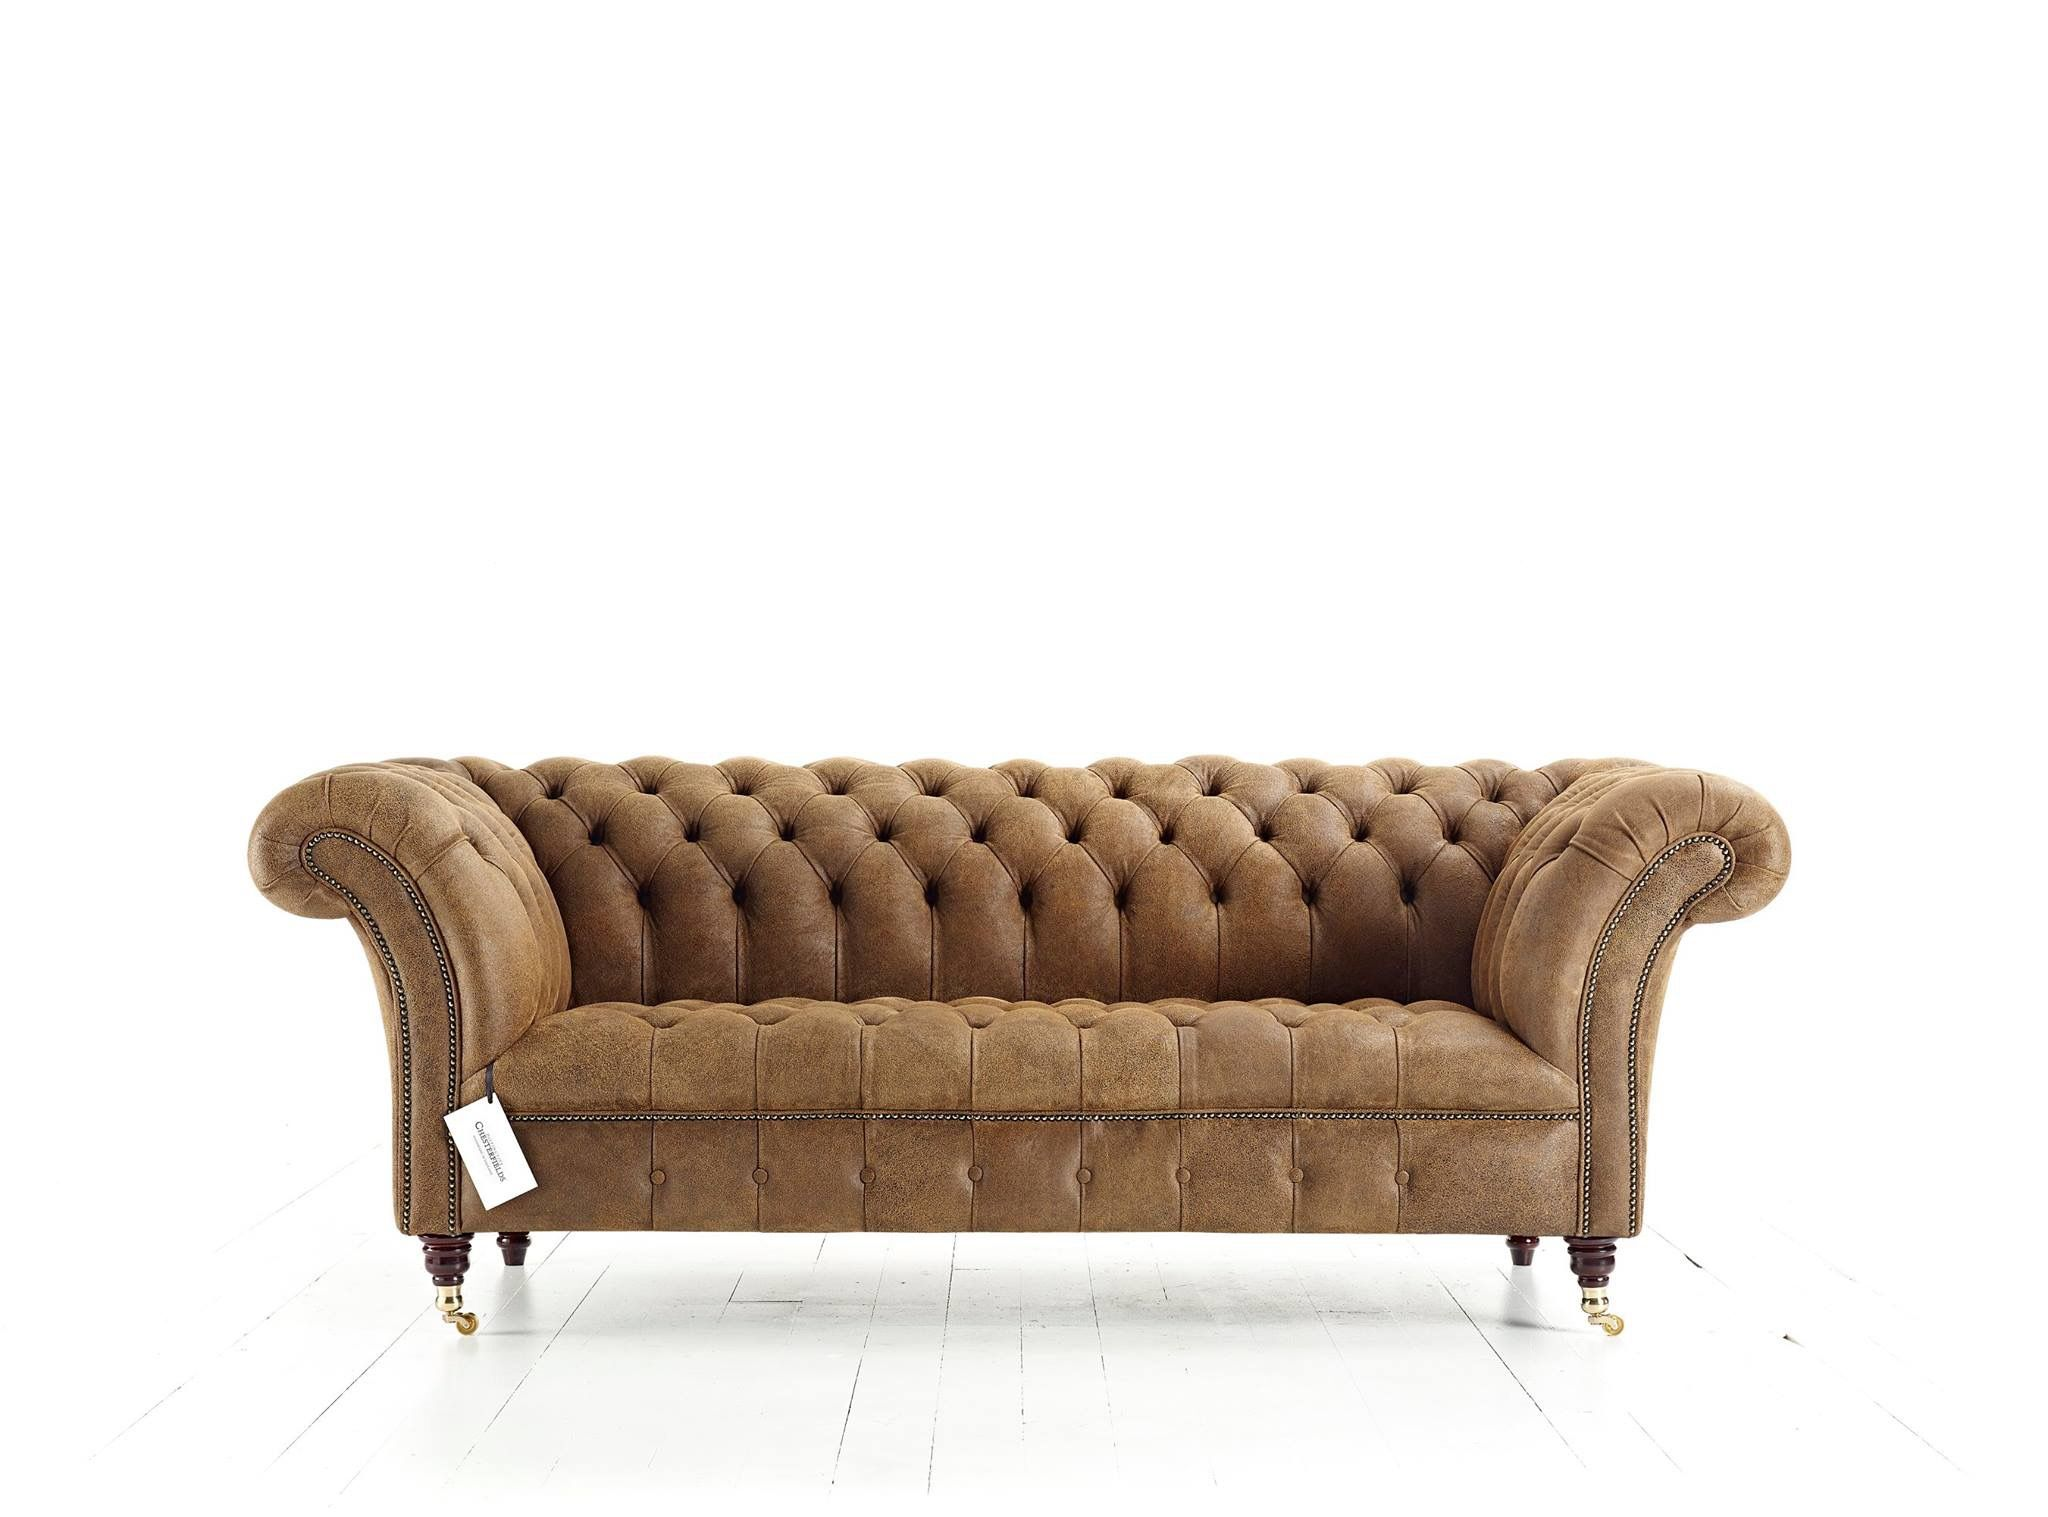 Flair Wide Arm Chesterfield Blenheim sofa with tufted button seat